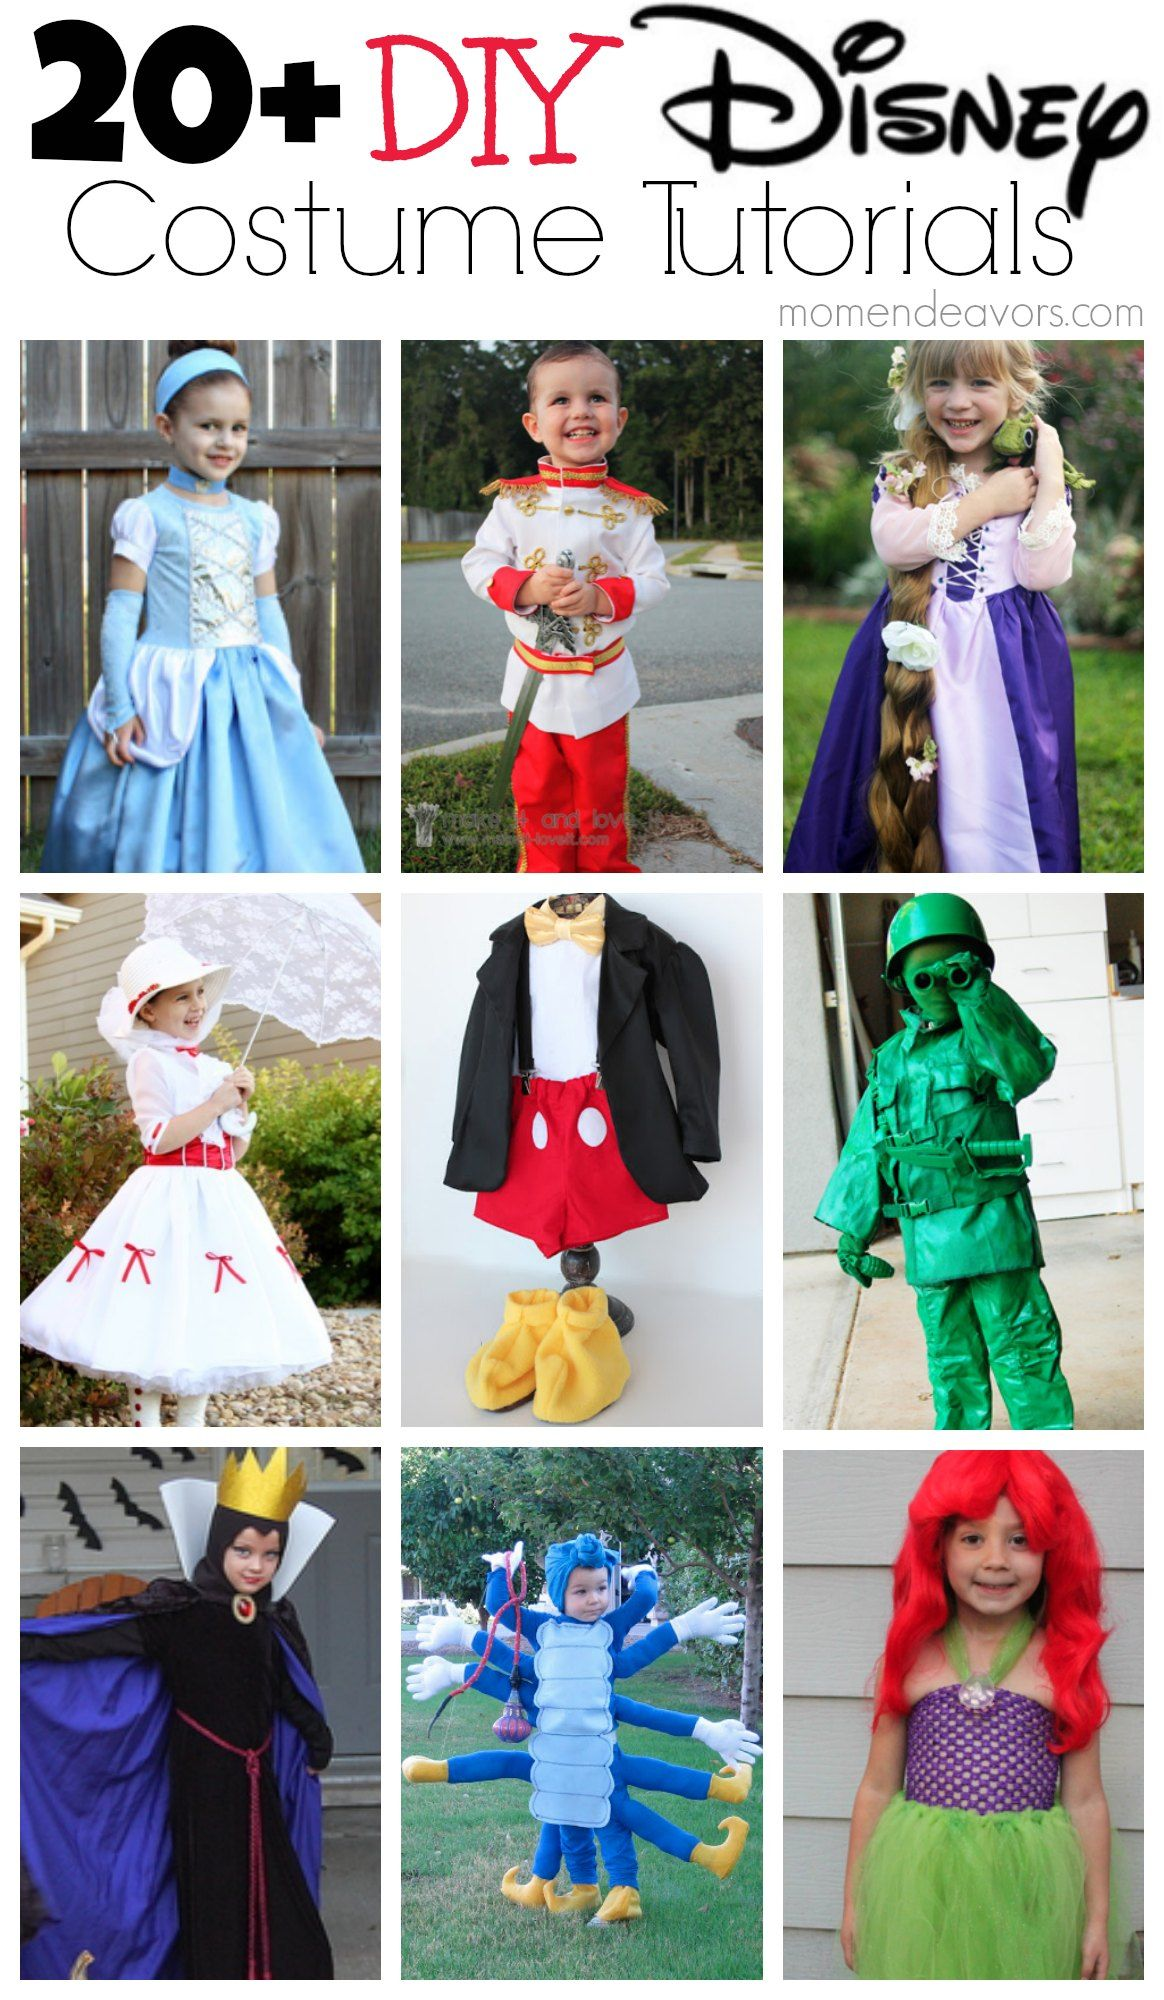 20+ DIY Disney Costume Tutorials via